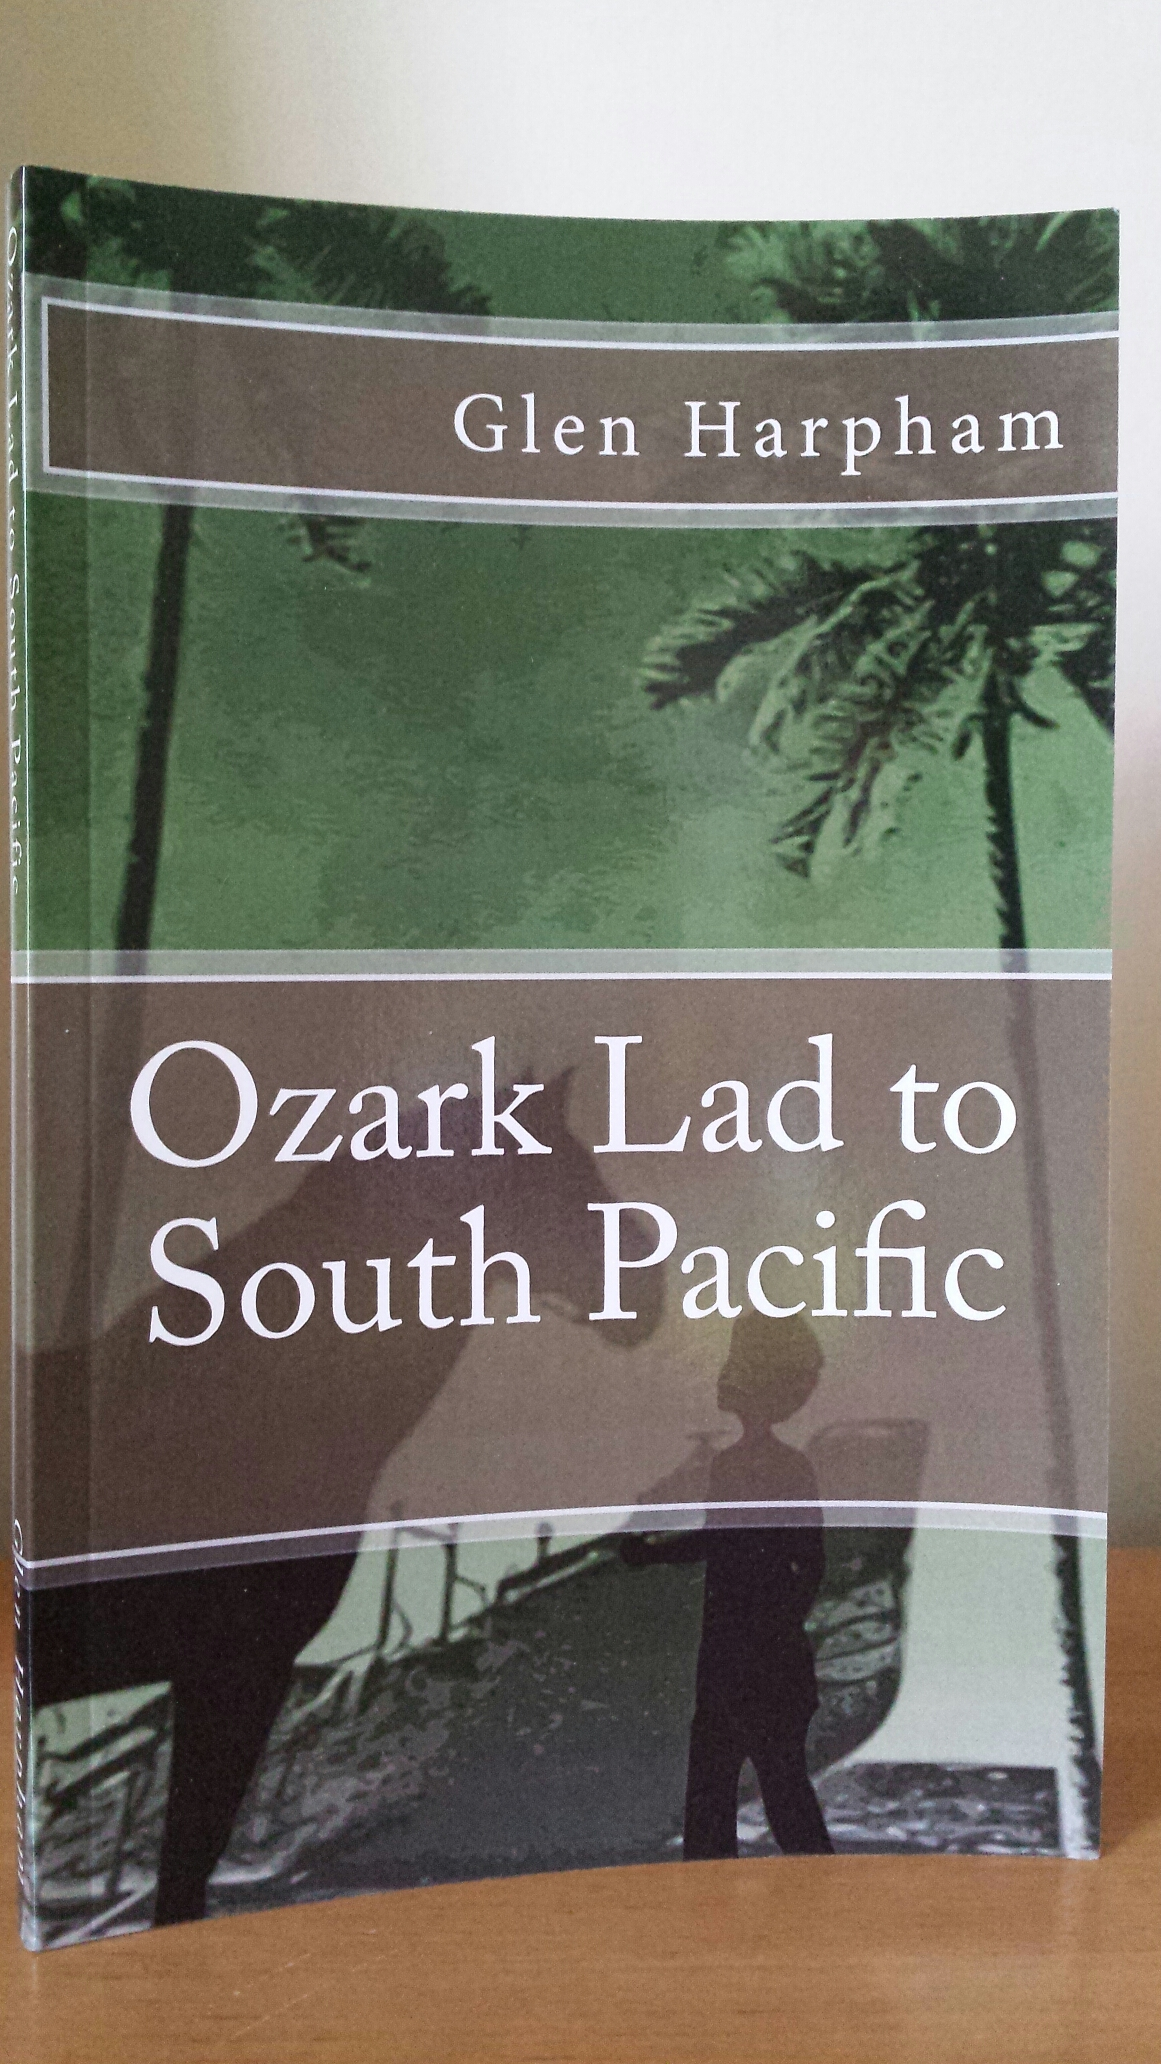 Ozark Lad to South Pacific